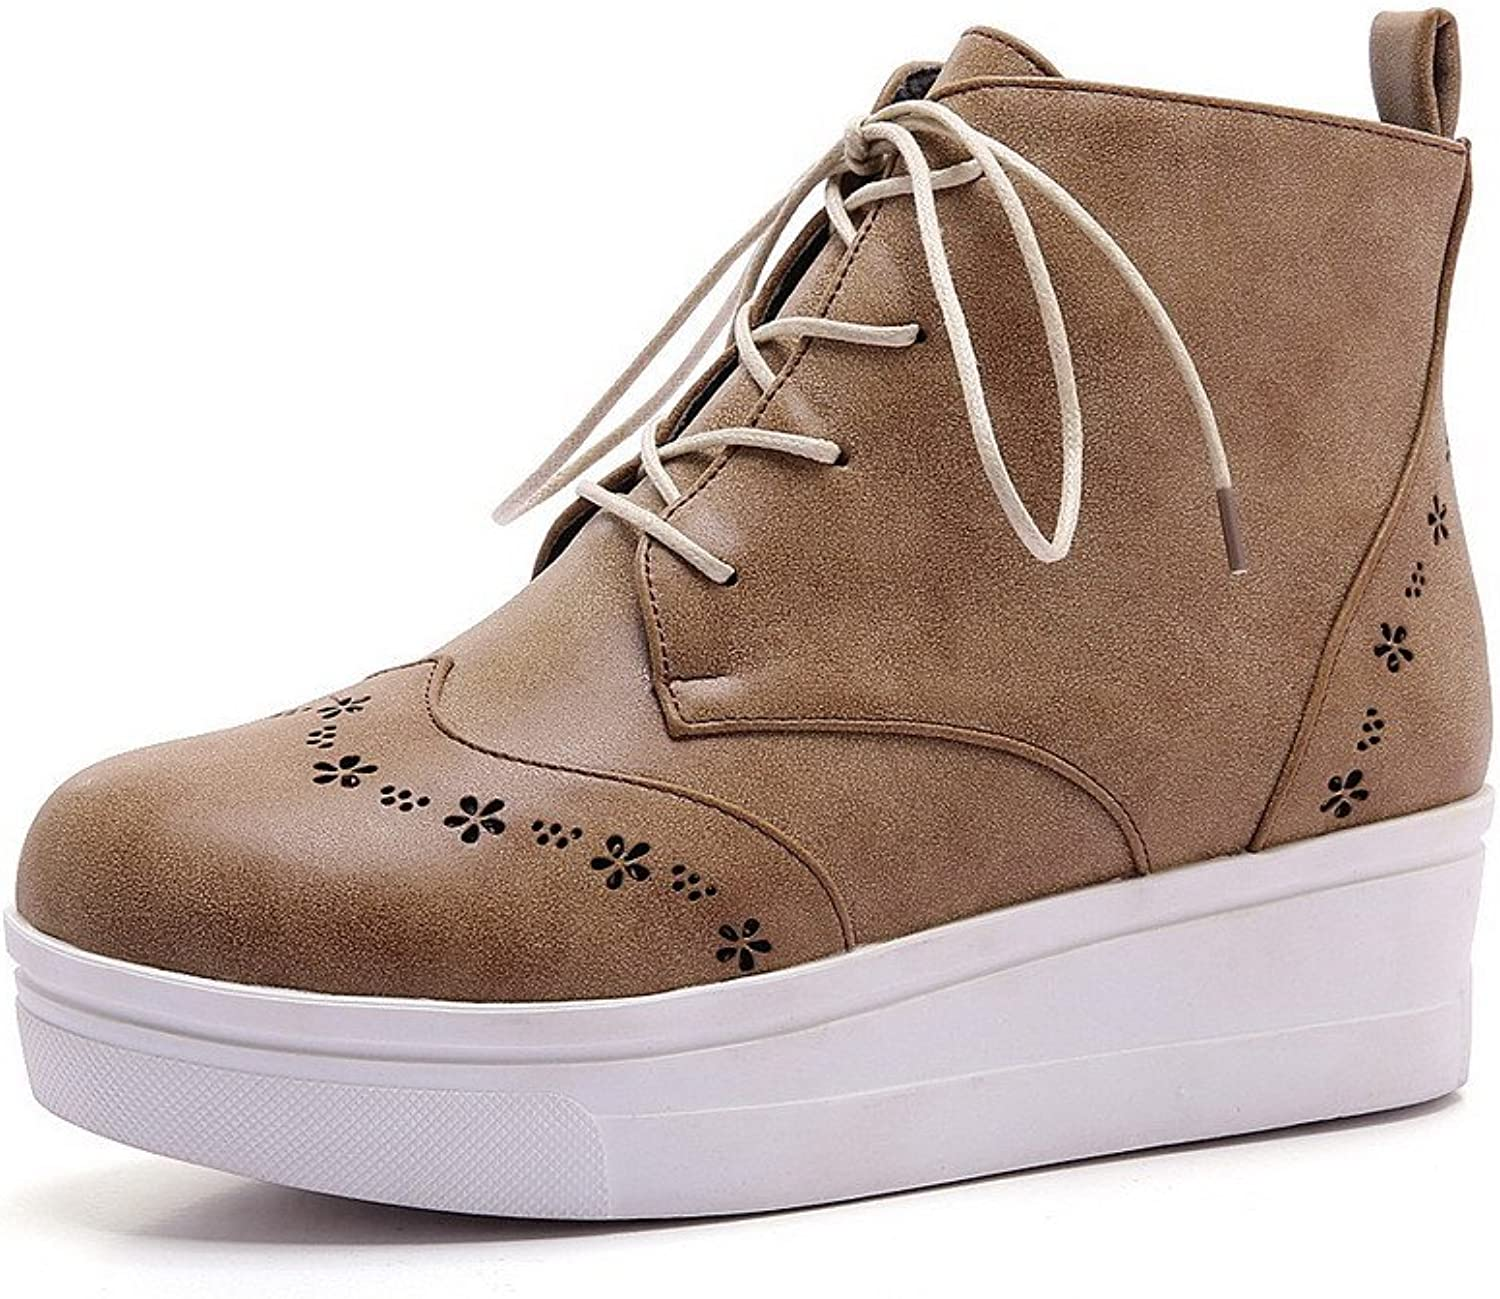 WeiPoot Women's Lace up Round Closed Toe Low Heels Pu Solid Boots